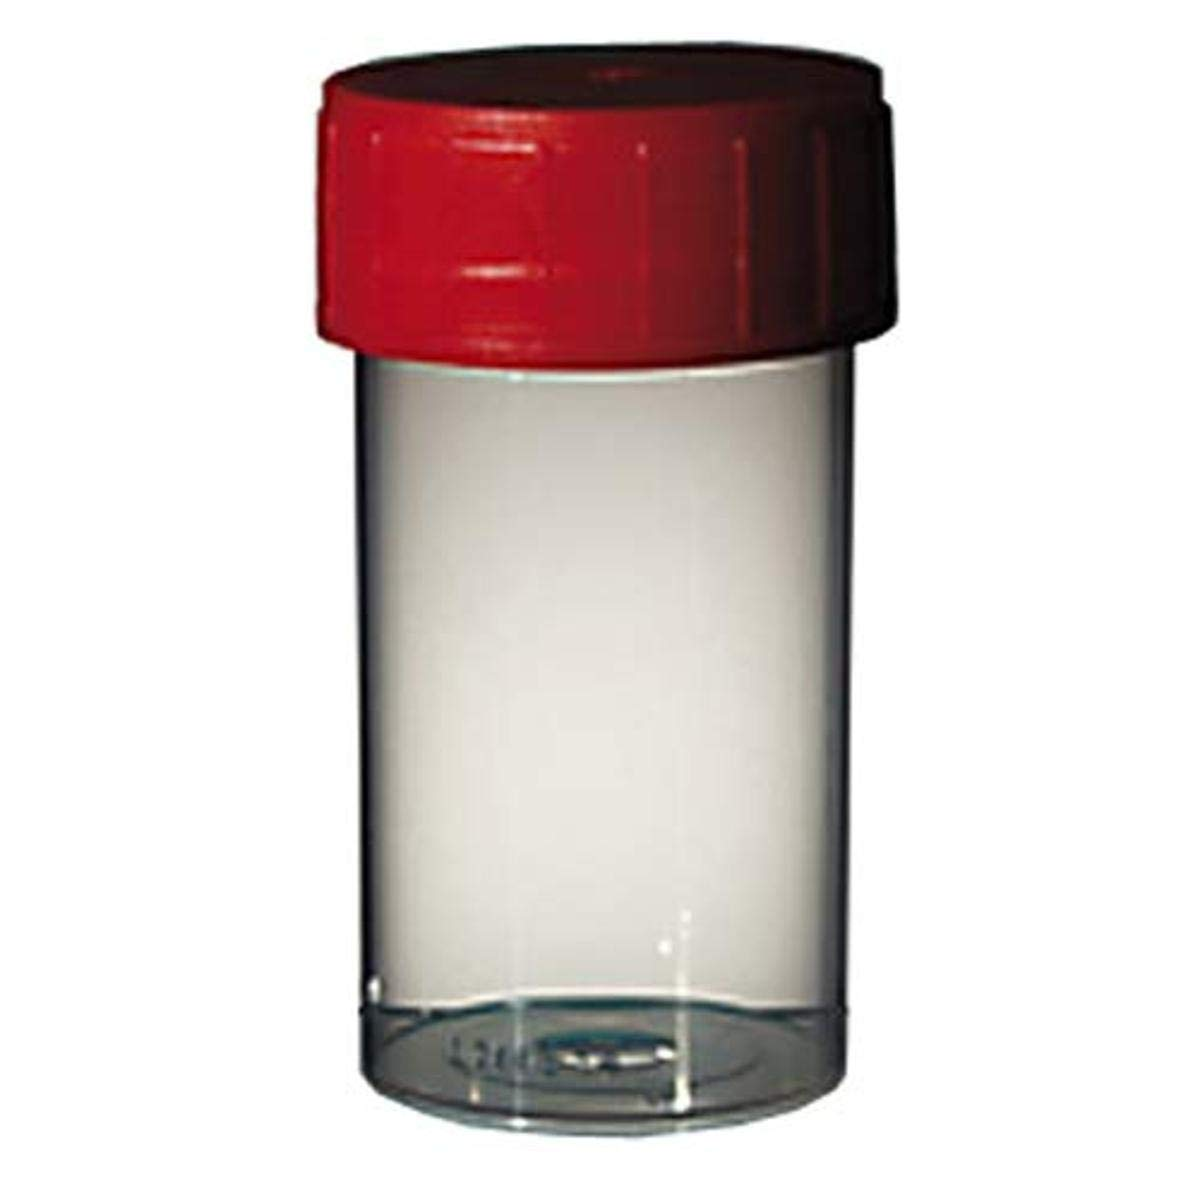 CORNING GOSSELIN TP52C-002 Straight Containers with Red Polyethylene Cap, 125 mL Natural, 74 x 52 mm Diameter, Red Screw Cap, Sterile (Pack of 380)